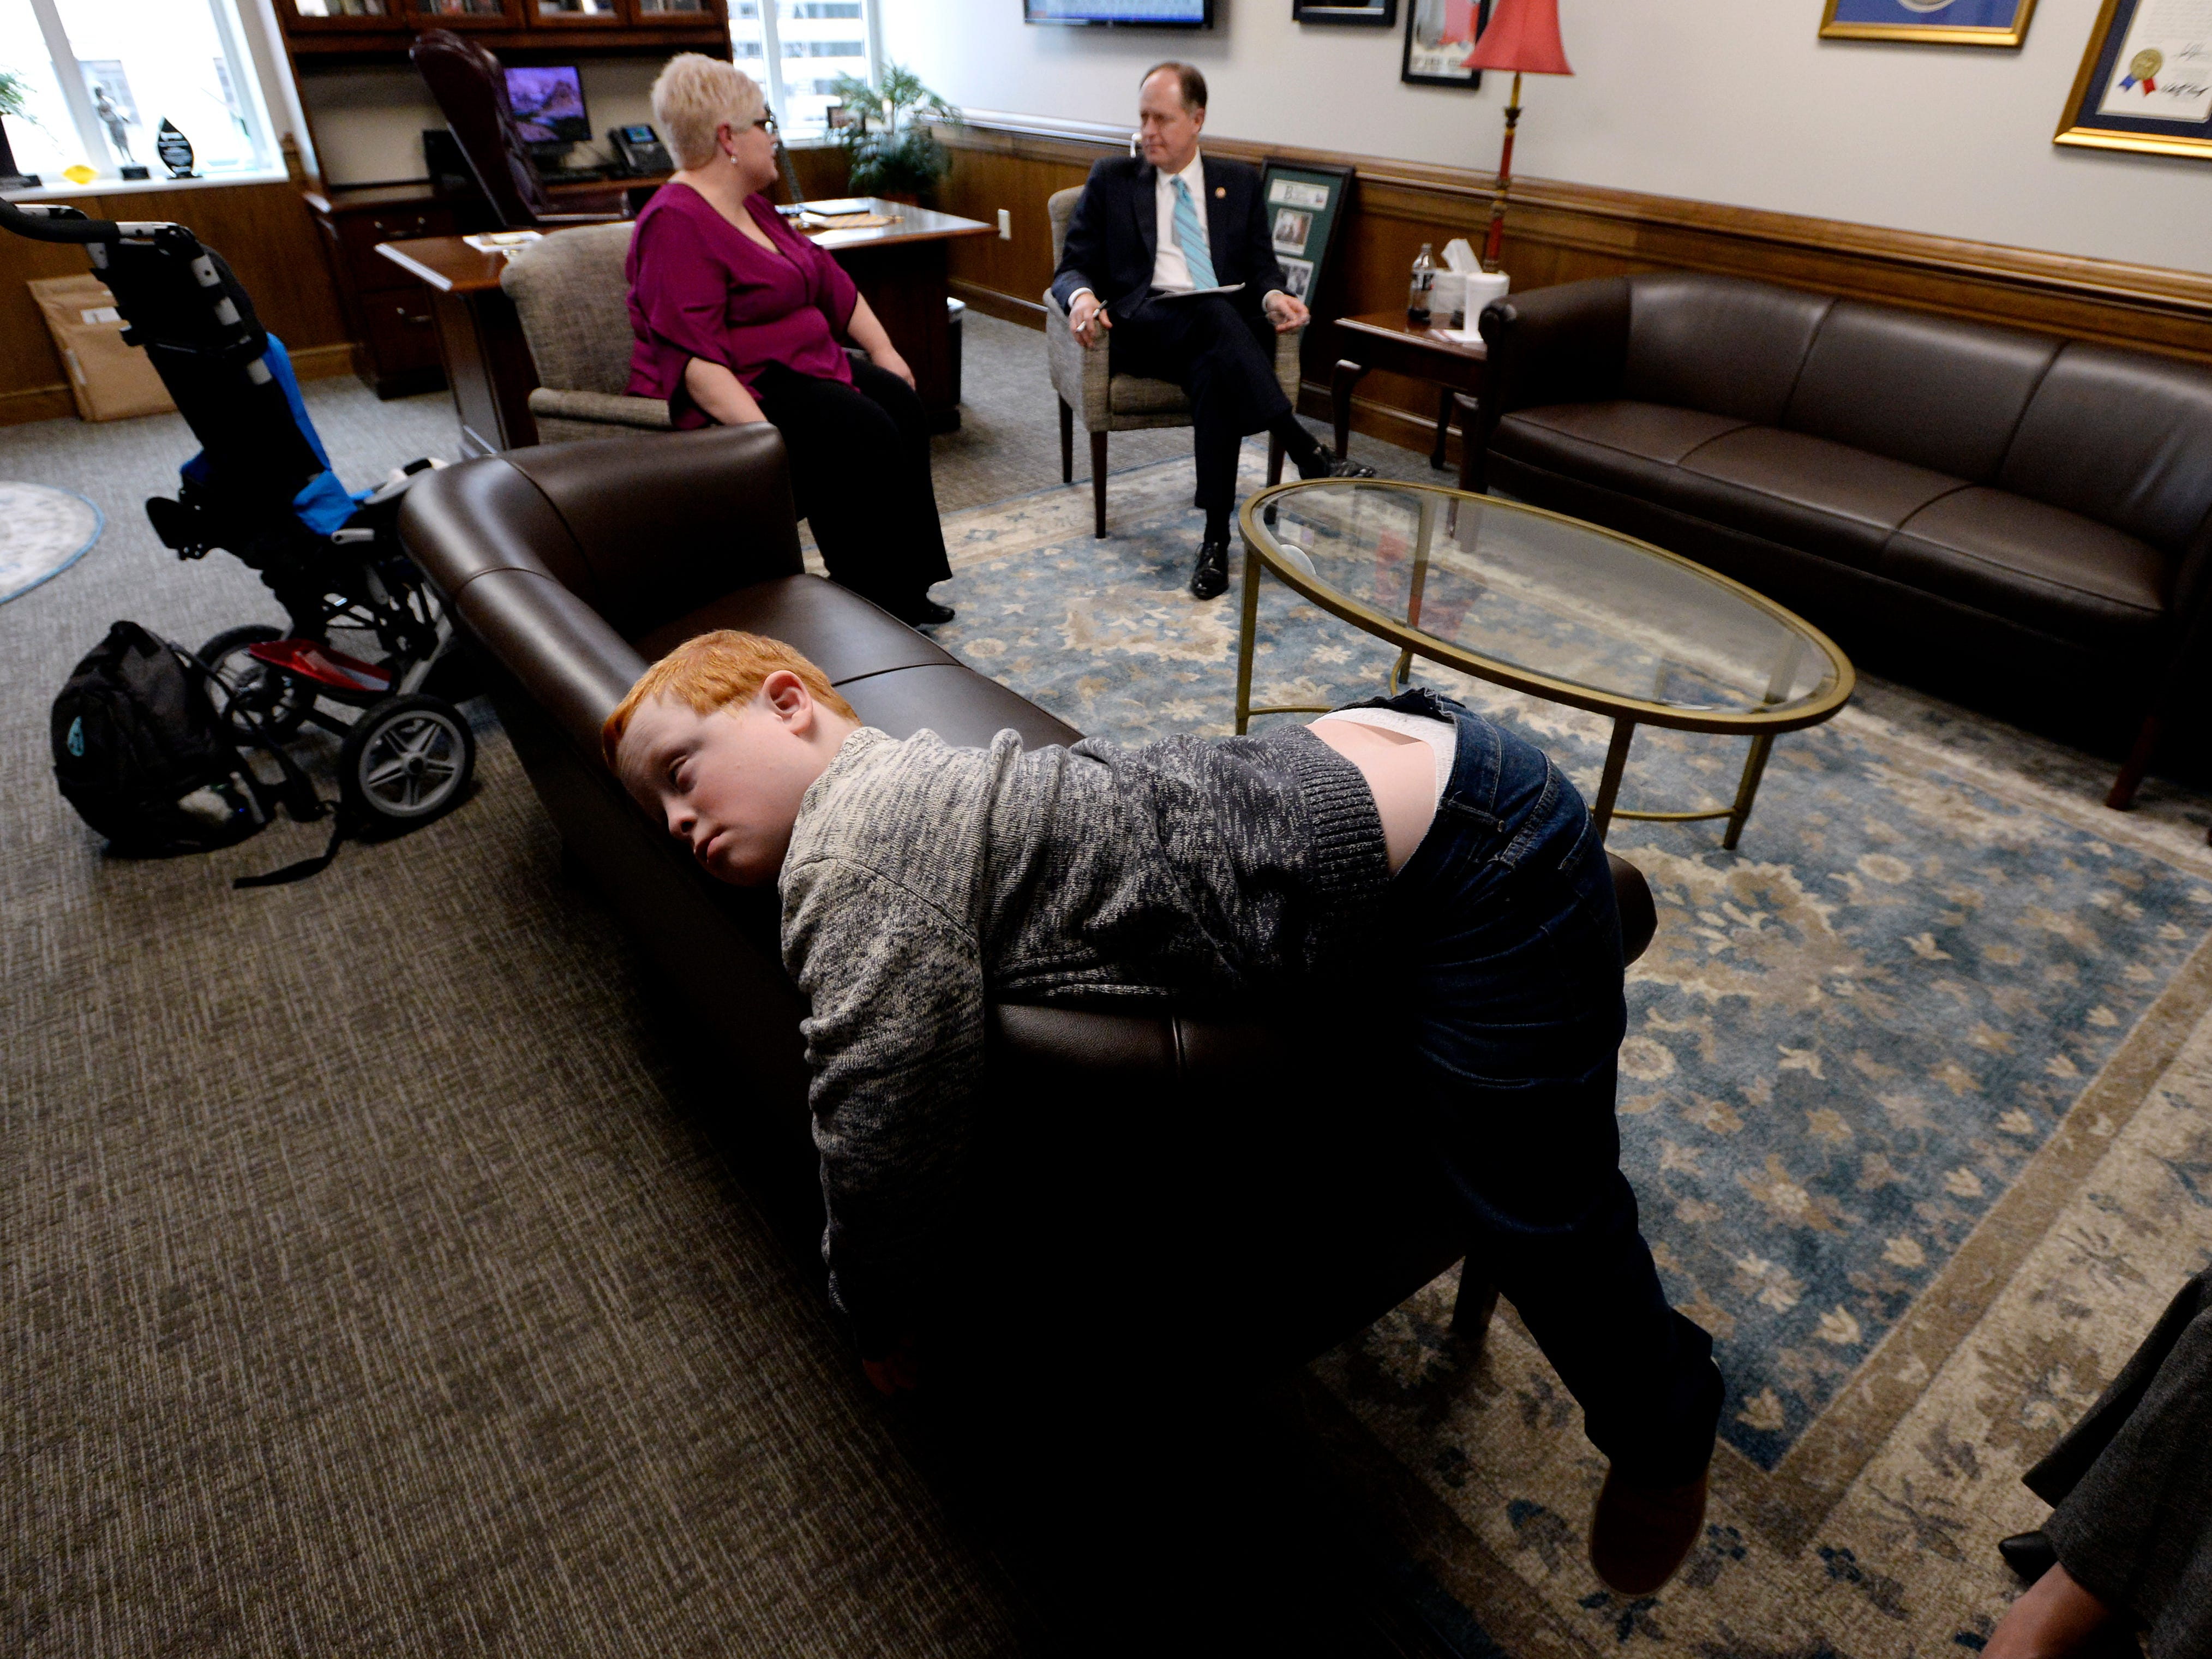 Hatcher Ryan, 10, who has Down syndrome, rests on a couch as single mother Jennifer Schultz speaks with  Tennessee State Senate Majority Leader Jack Johnson, R-Franklin, in his office during Disability Day on the Hill Tuesday, Feb. 12, 2019, in Nashville, Tenn. Families and advocates of people with disabilities in Tennessee met with lawmakers to express concerns and the needs of the disabled in the state.